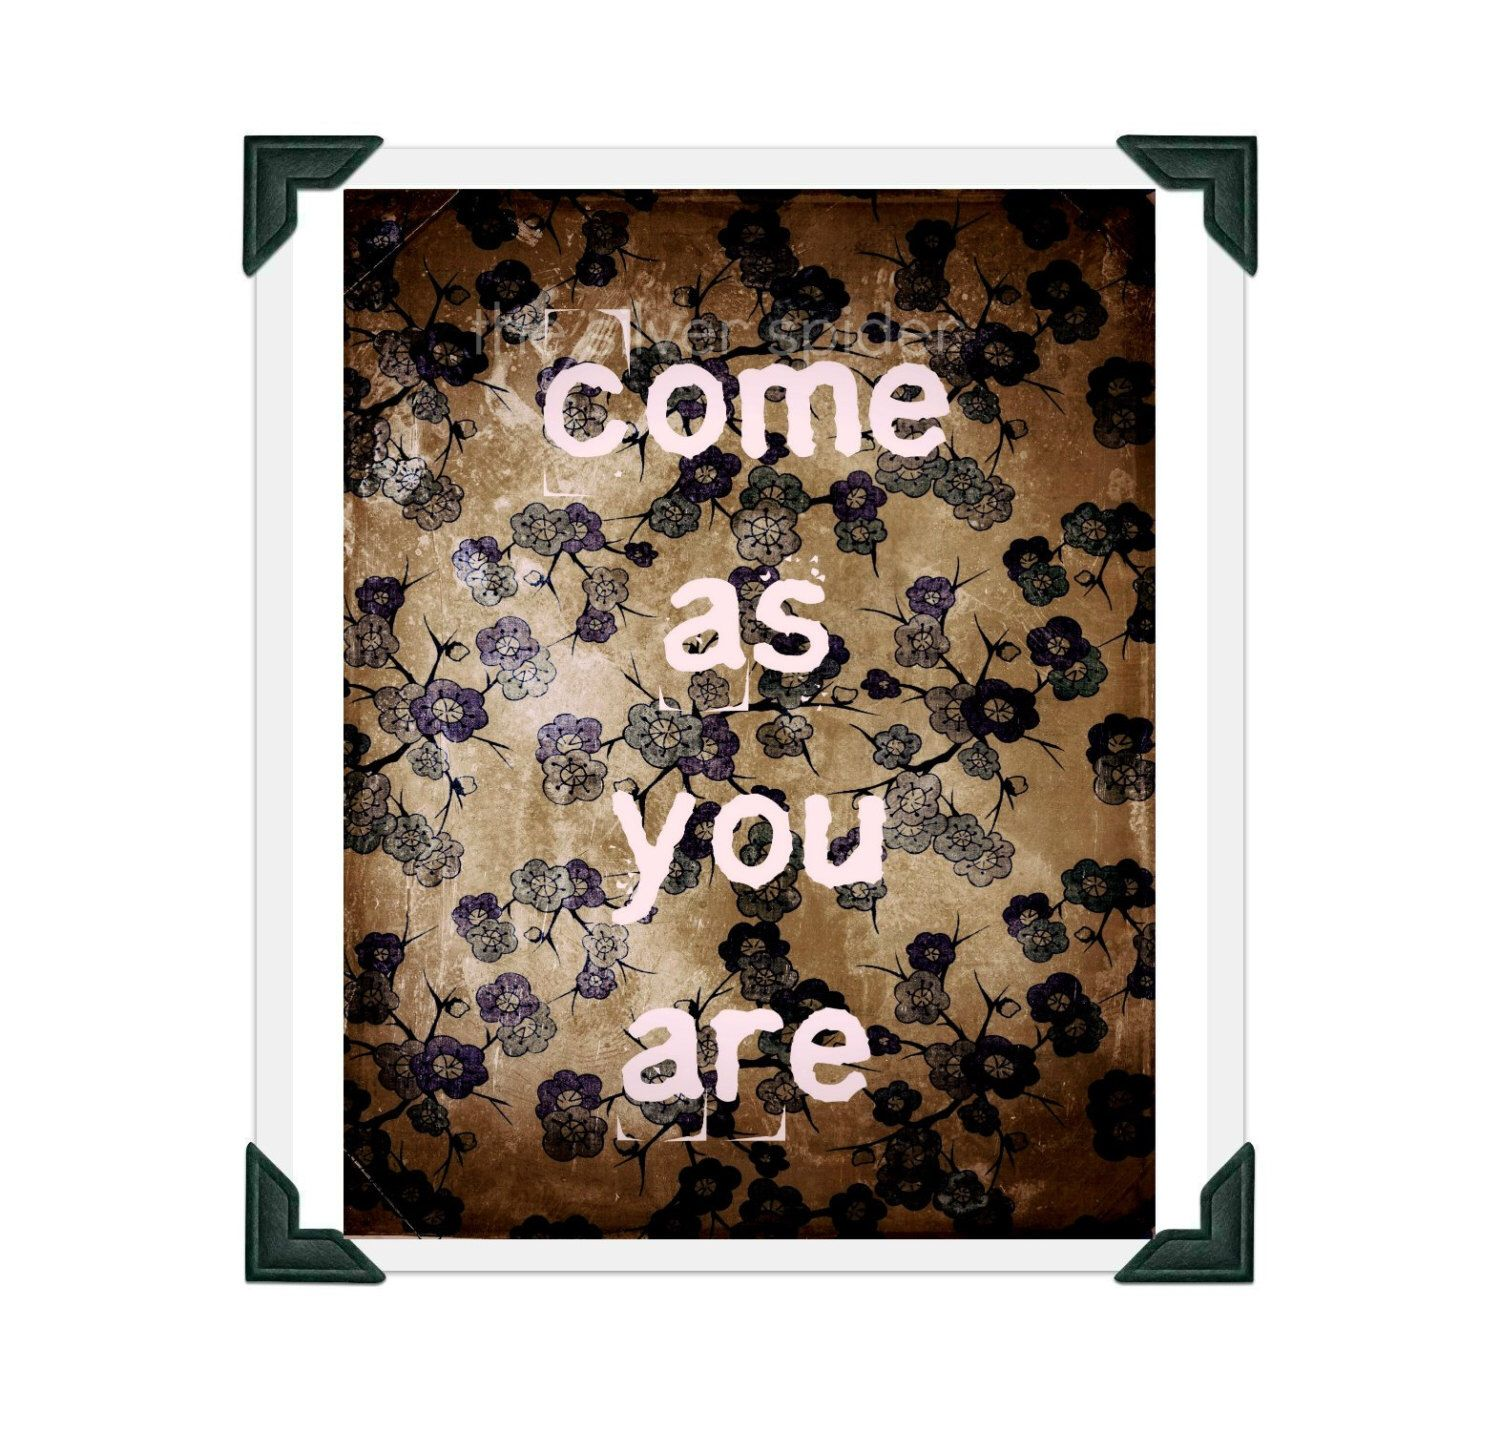 Come As You Are Lyrics - Art Print - 8x10 - Nirvana - Grunge by TheSilverSpider on Etsy https://www.etsy.com/listing/152330722/come-as-you-are-lyrics-art-print-8x10